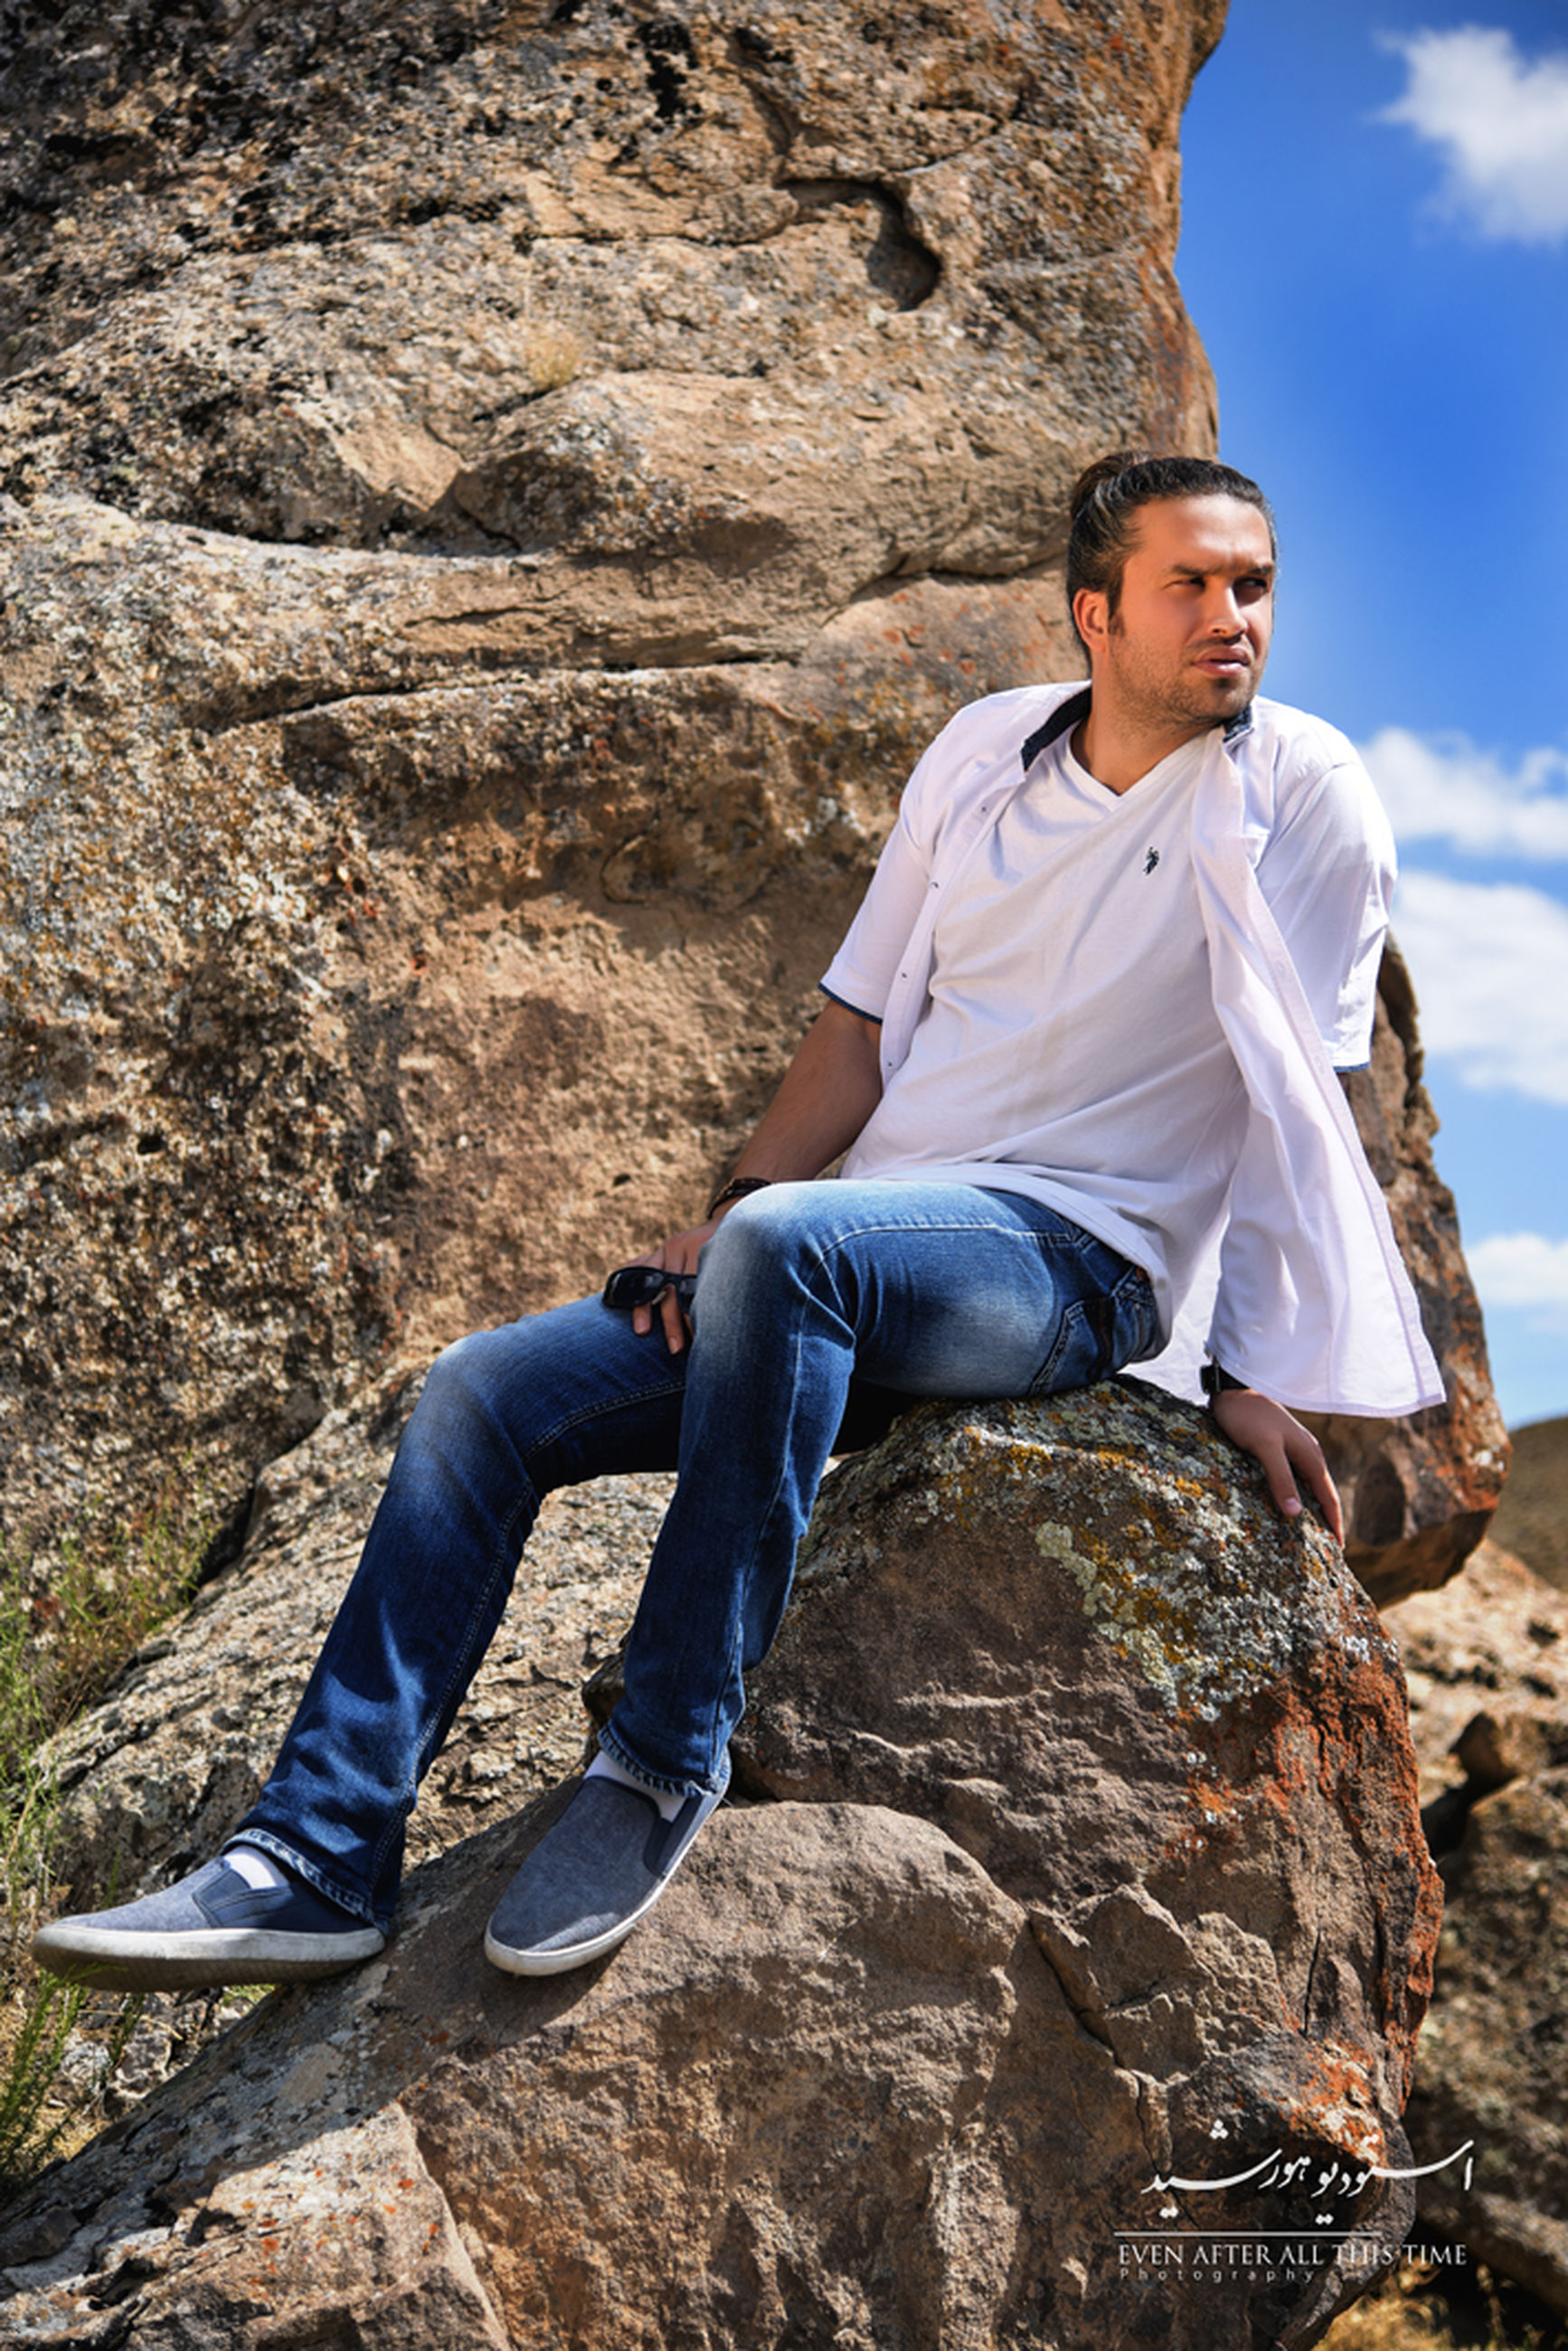 rock - object, sitting, full length, person, casual clothing, young adult, leisure activity, rock formation, lifestyles, cliff, mountain, rock, getting away from it all, geology, mature adult, relaxation, tourism, outdoors, non-urban scene, tranquility, rocky, sky